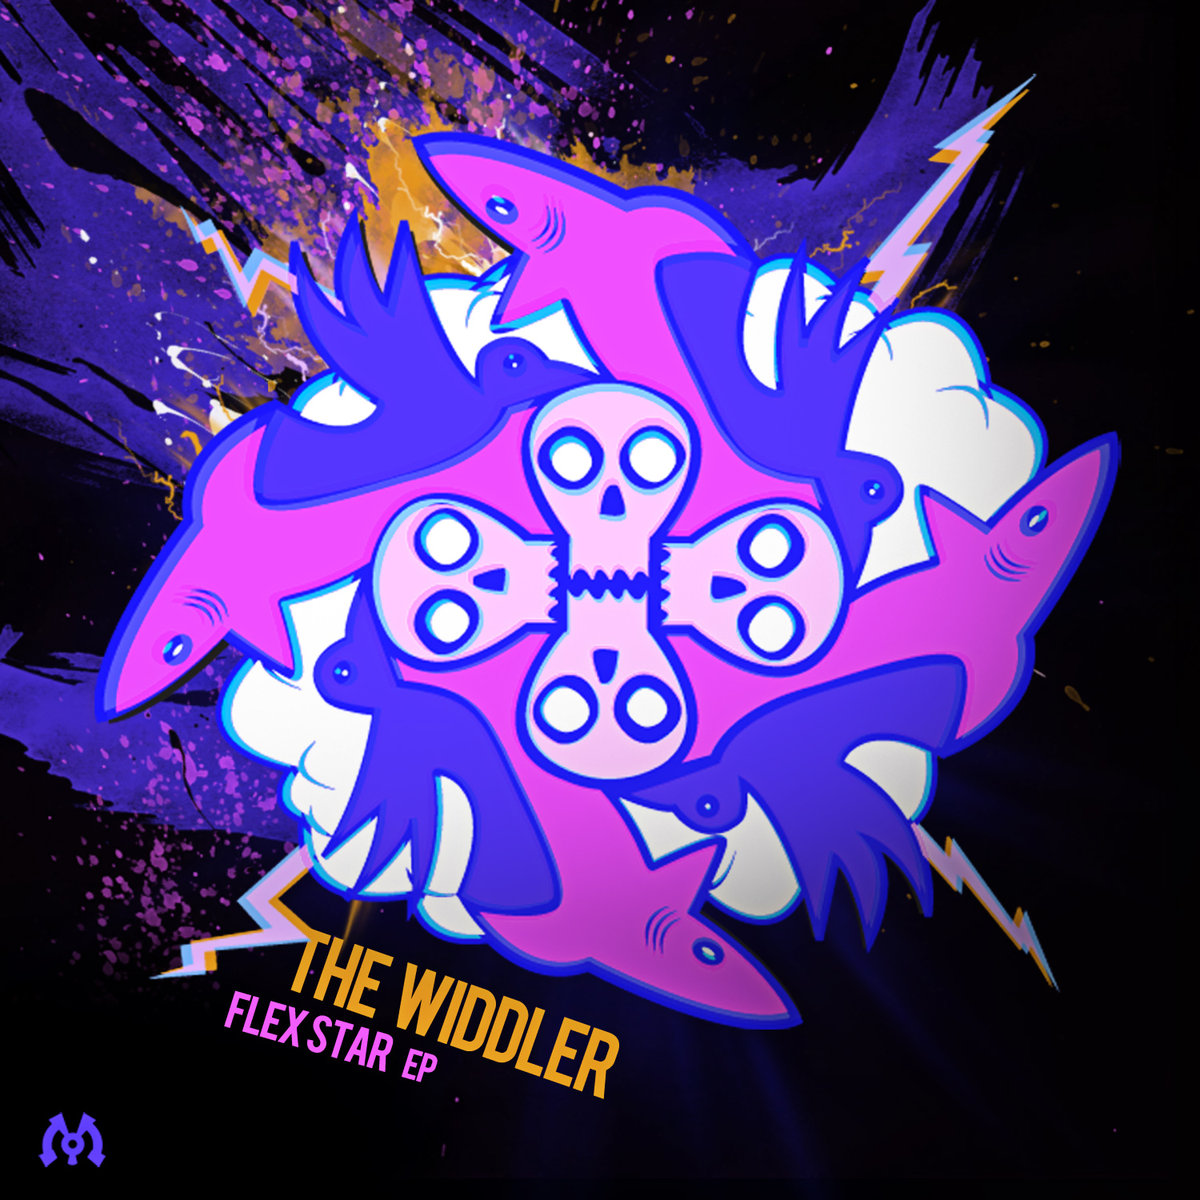 The Widdler - Flexstar (artwork)